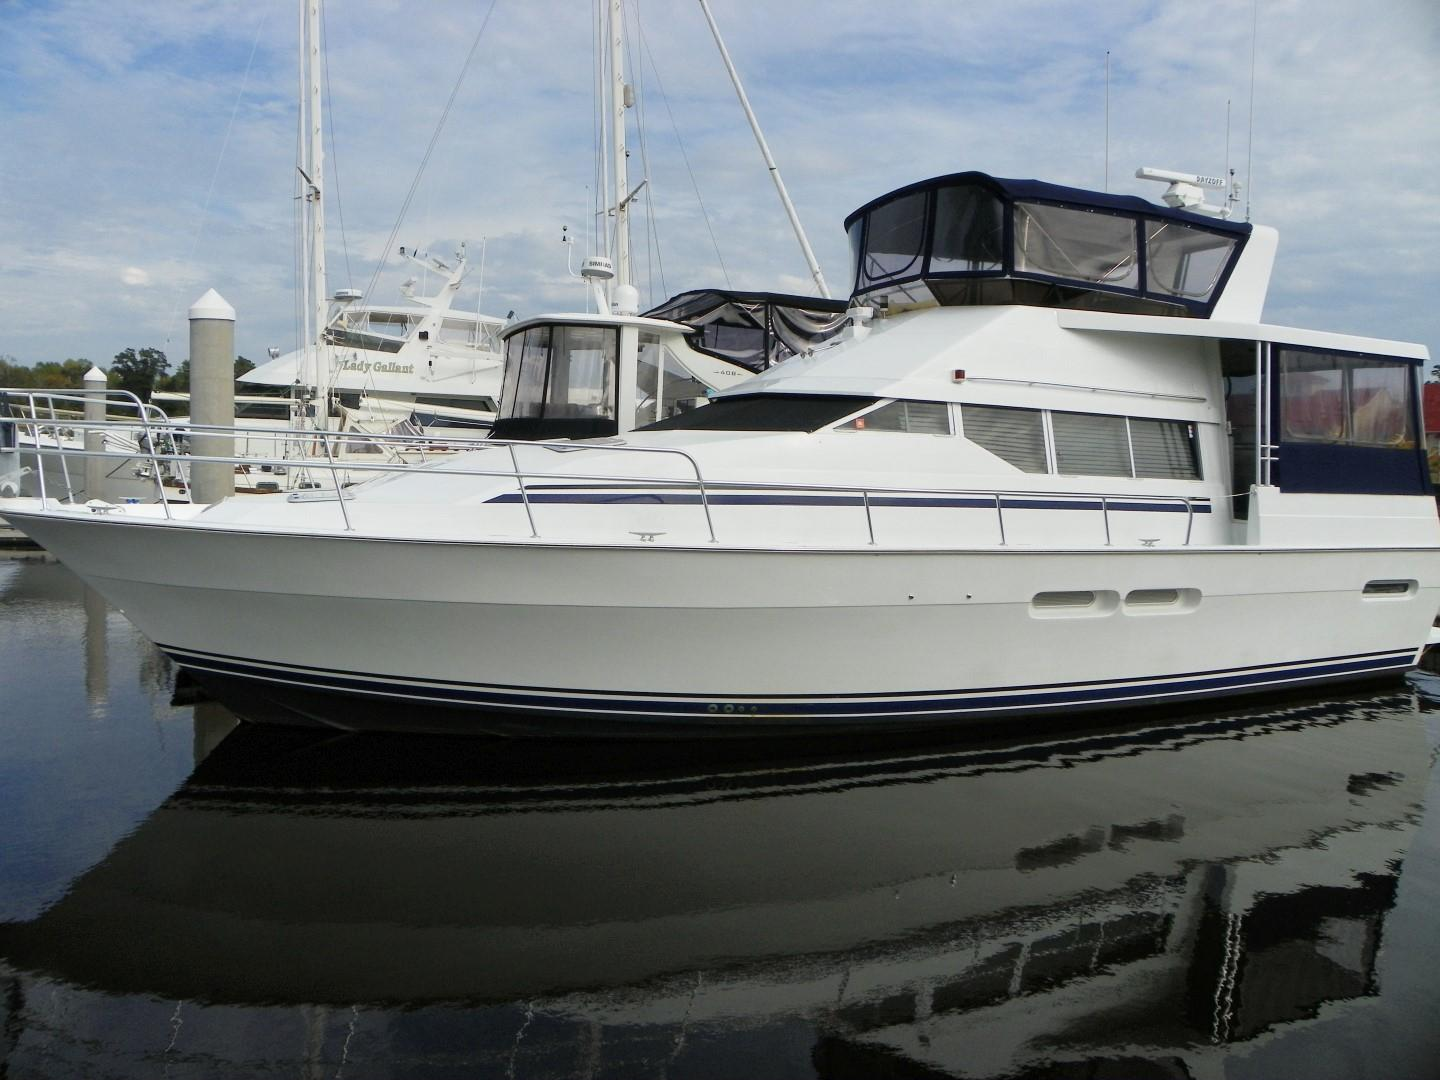 47 foot boats for sale in sc boat listings for Used boat motors for sale in sc